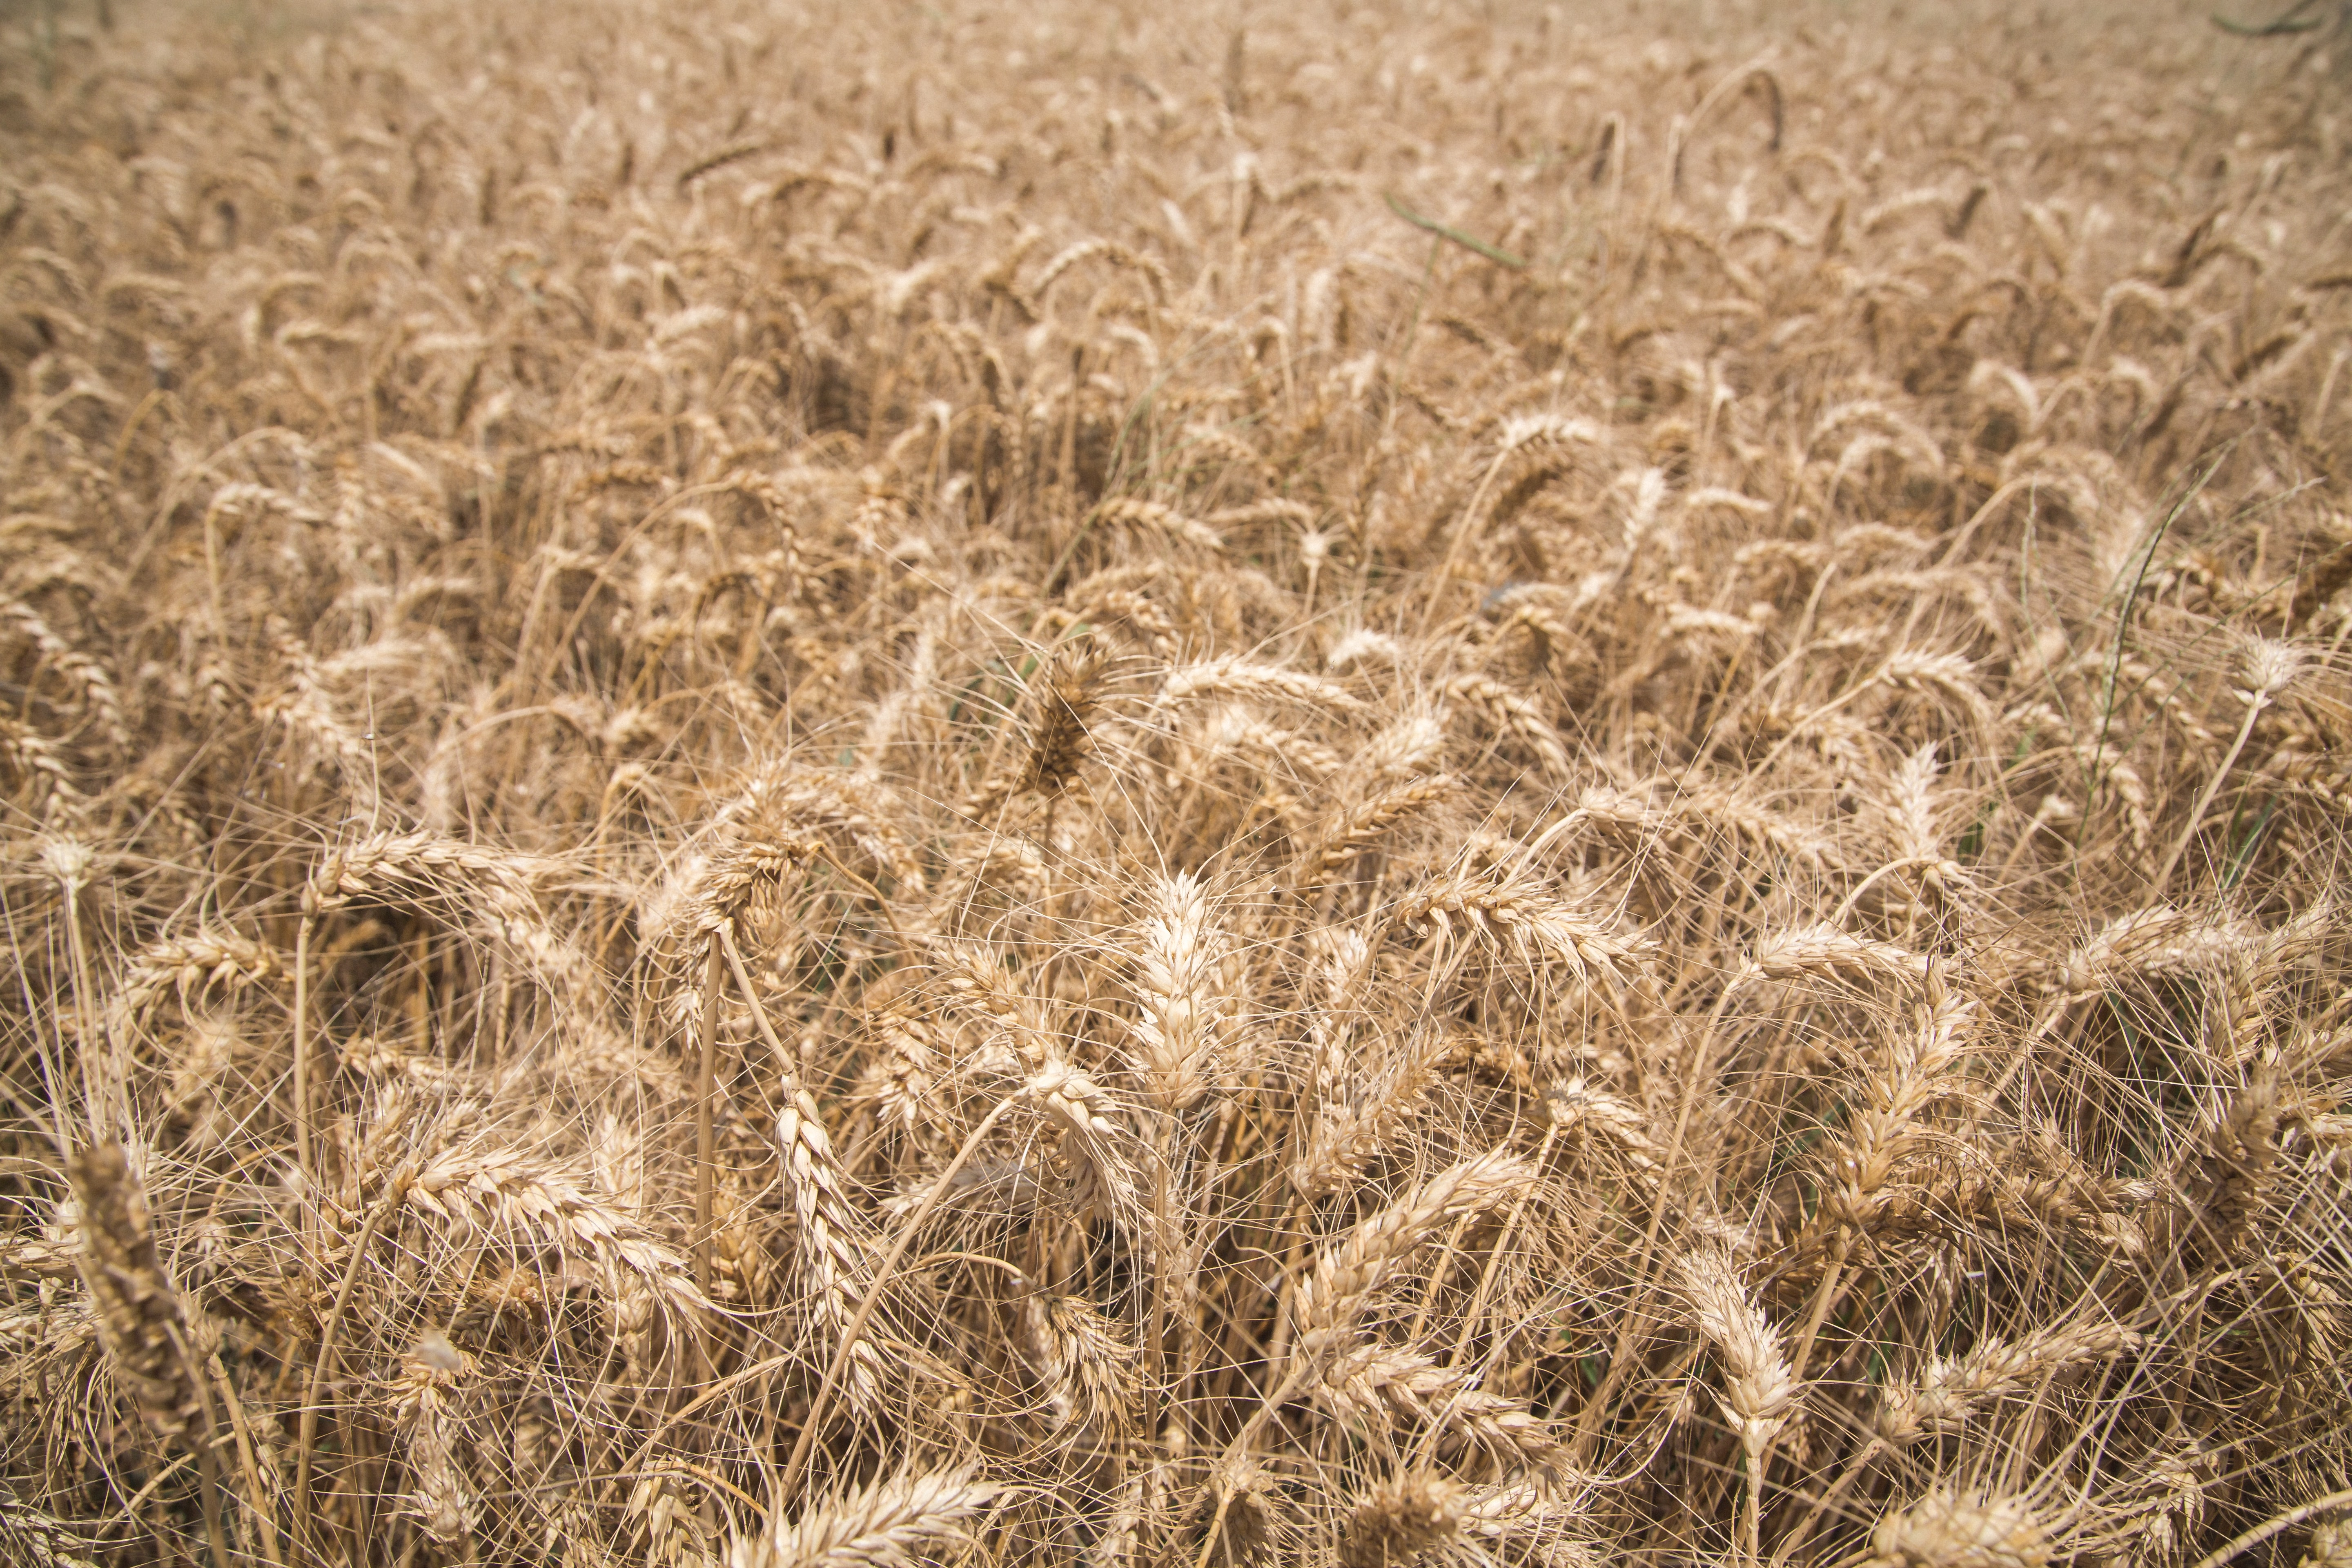 close-up photography of dried wheats